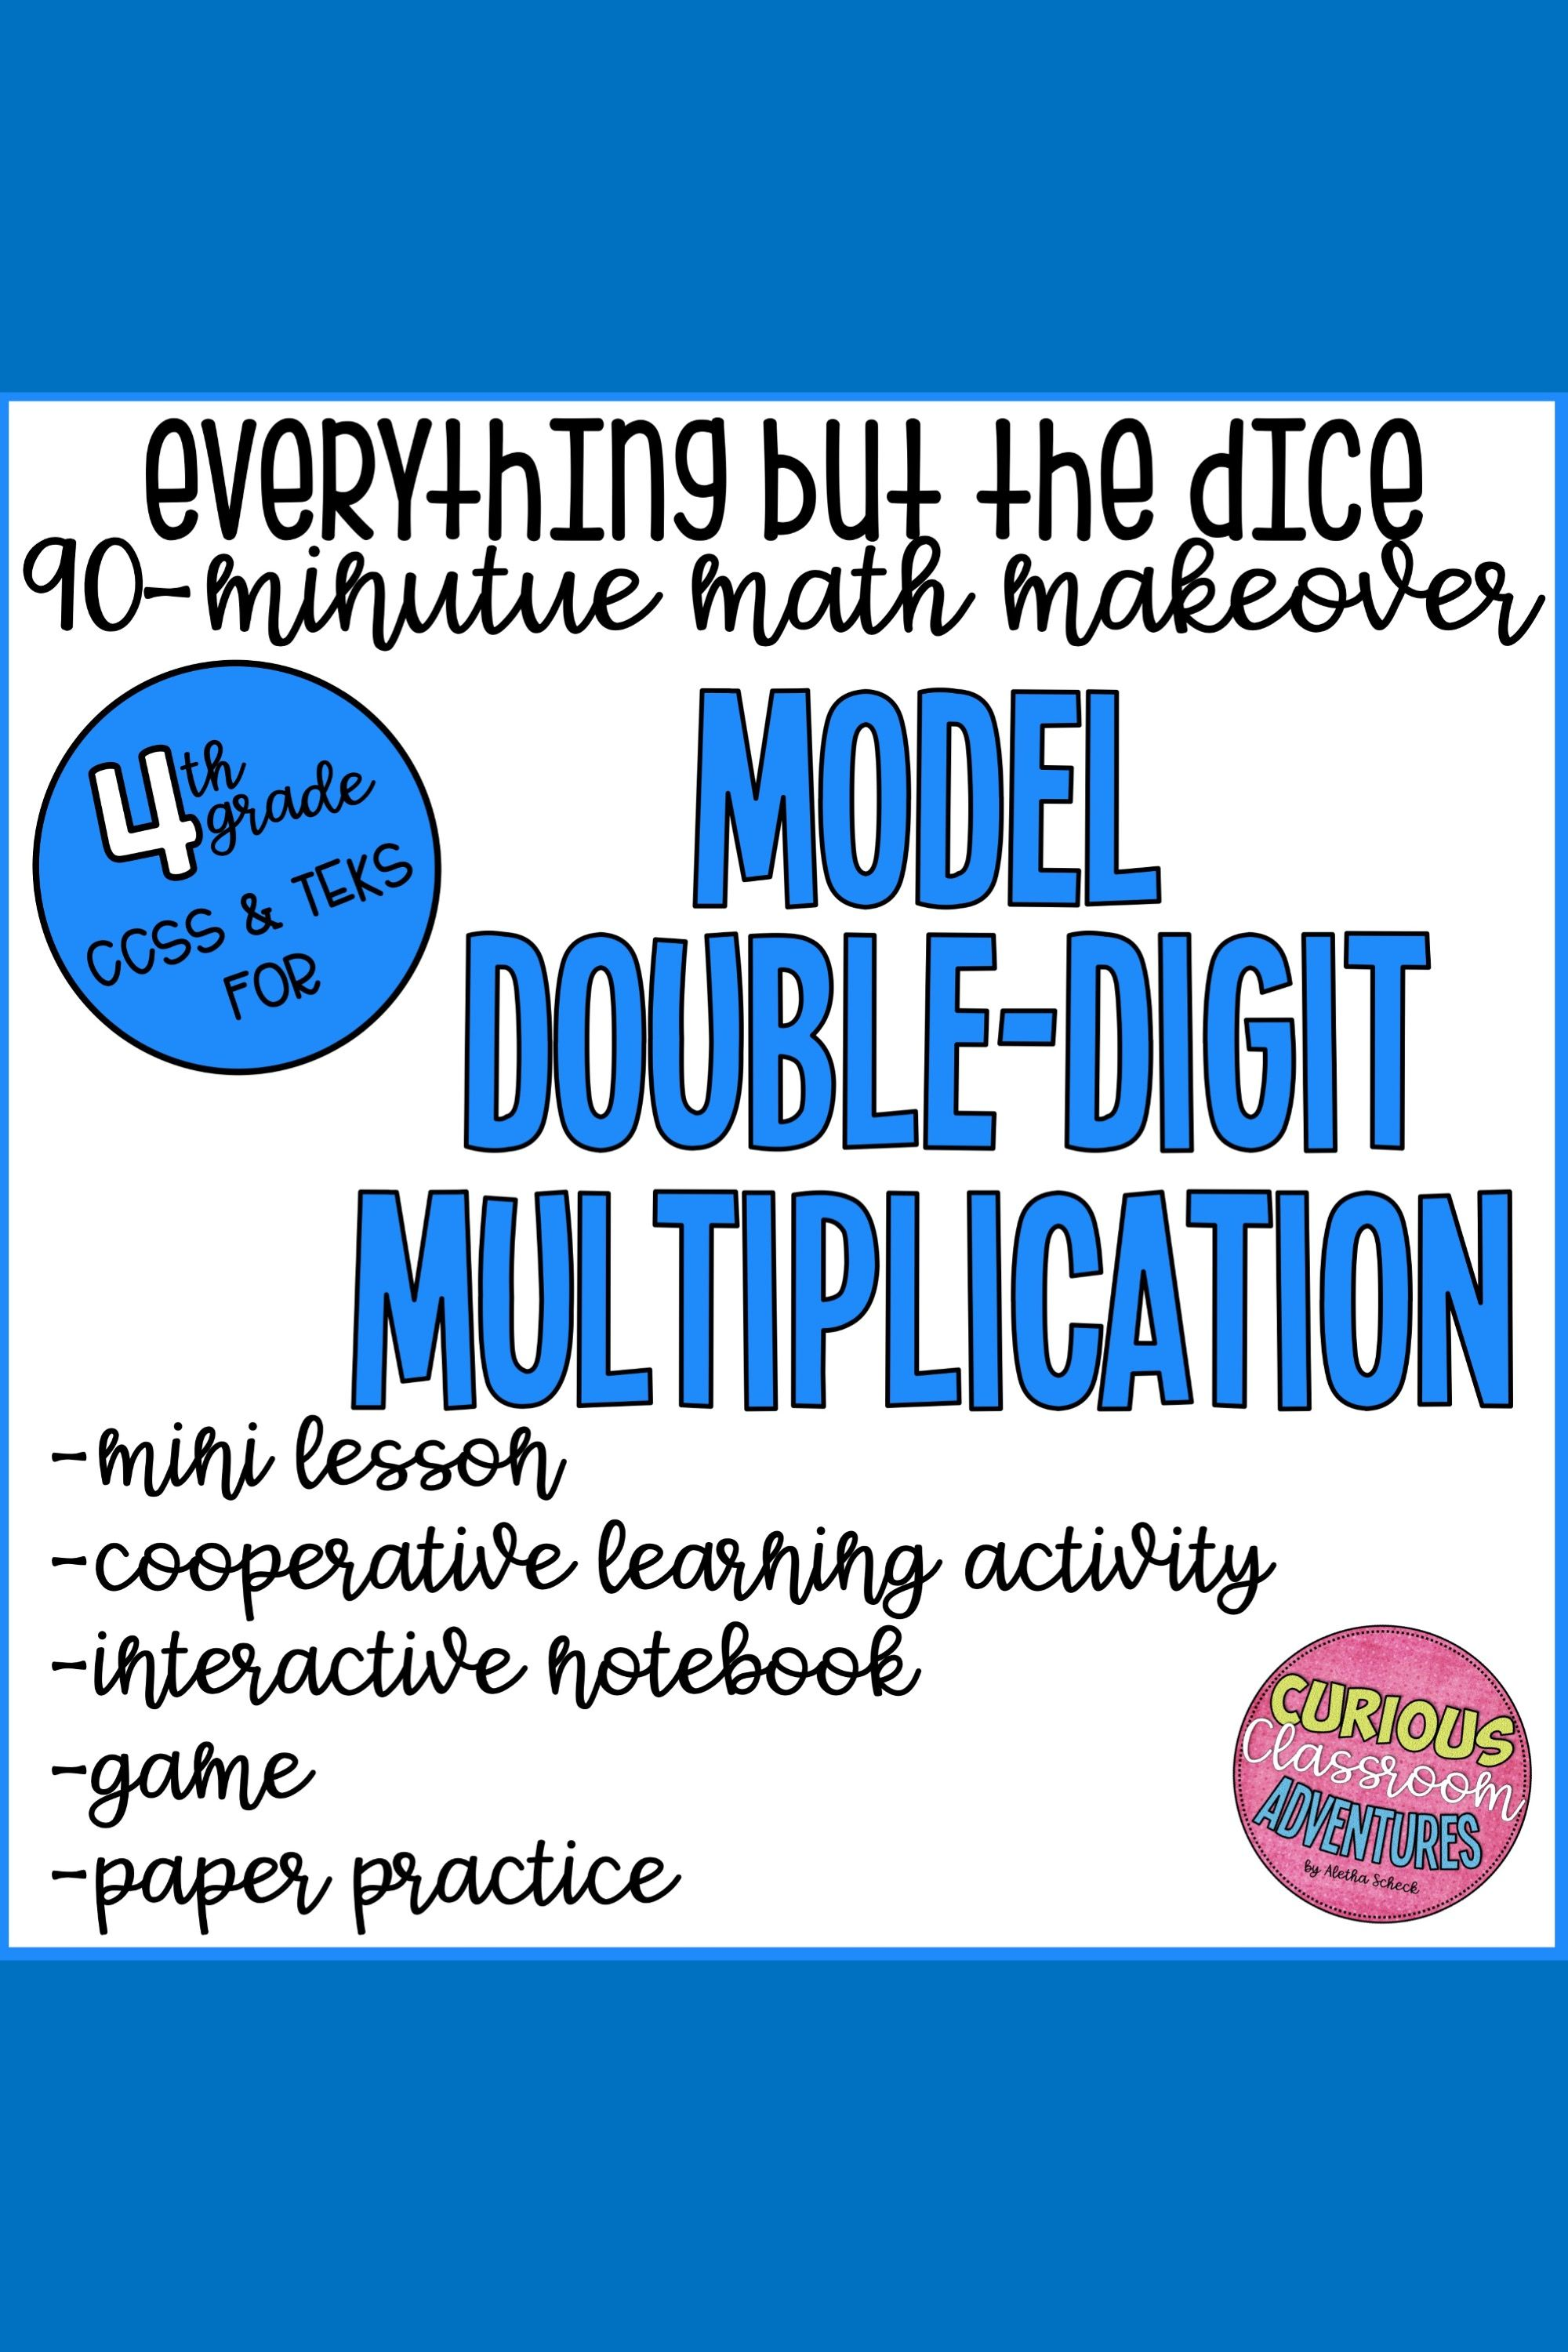 Modeling Double Digit Multiplication Interactive Lesson